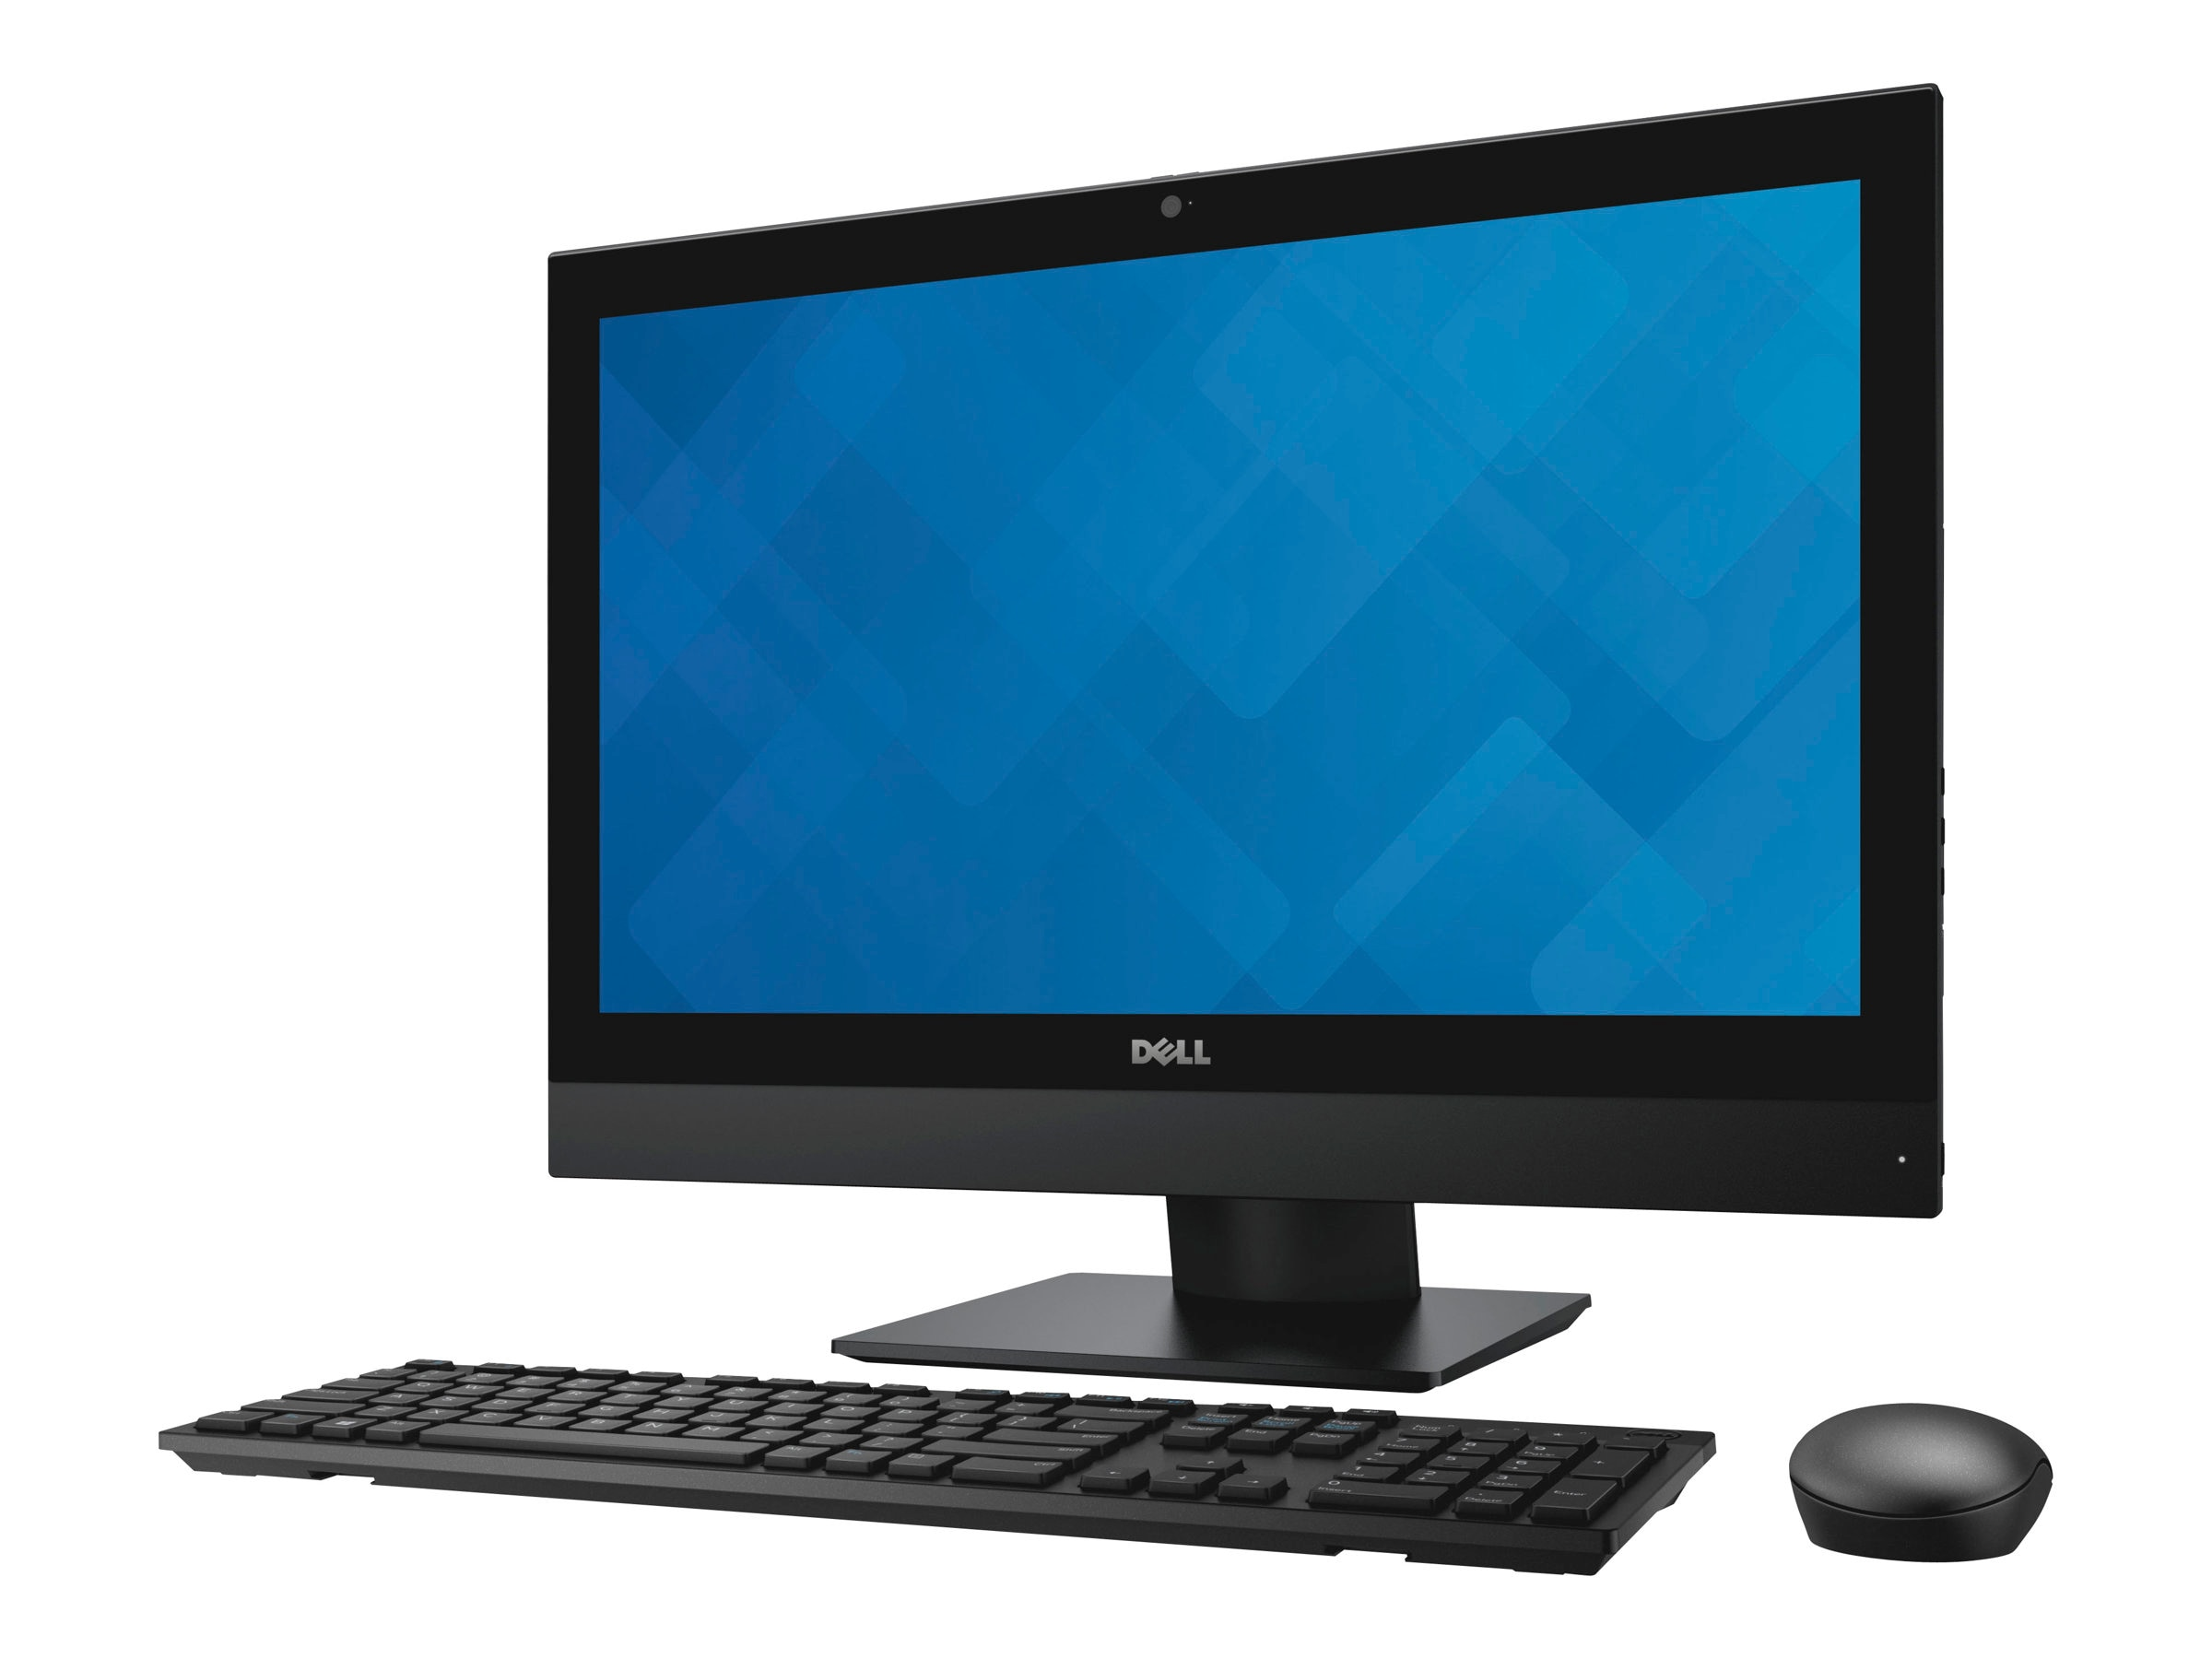 Dell OptiPlex 3240 AIO Core i5-6500 3.2GHz 8GB 256GB SSD DVD+RW GbE ac BT W10P64